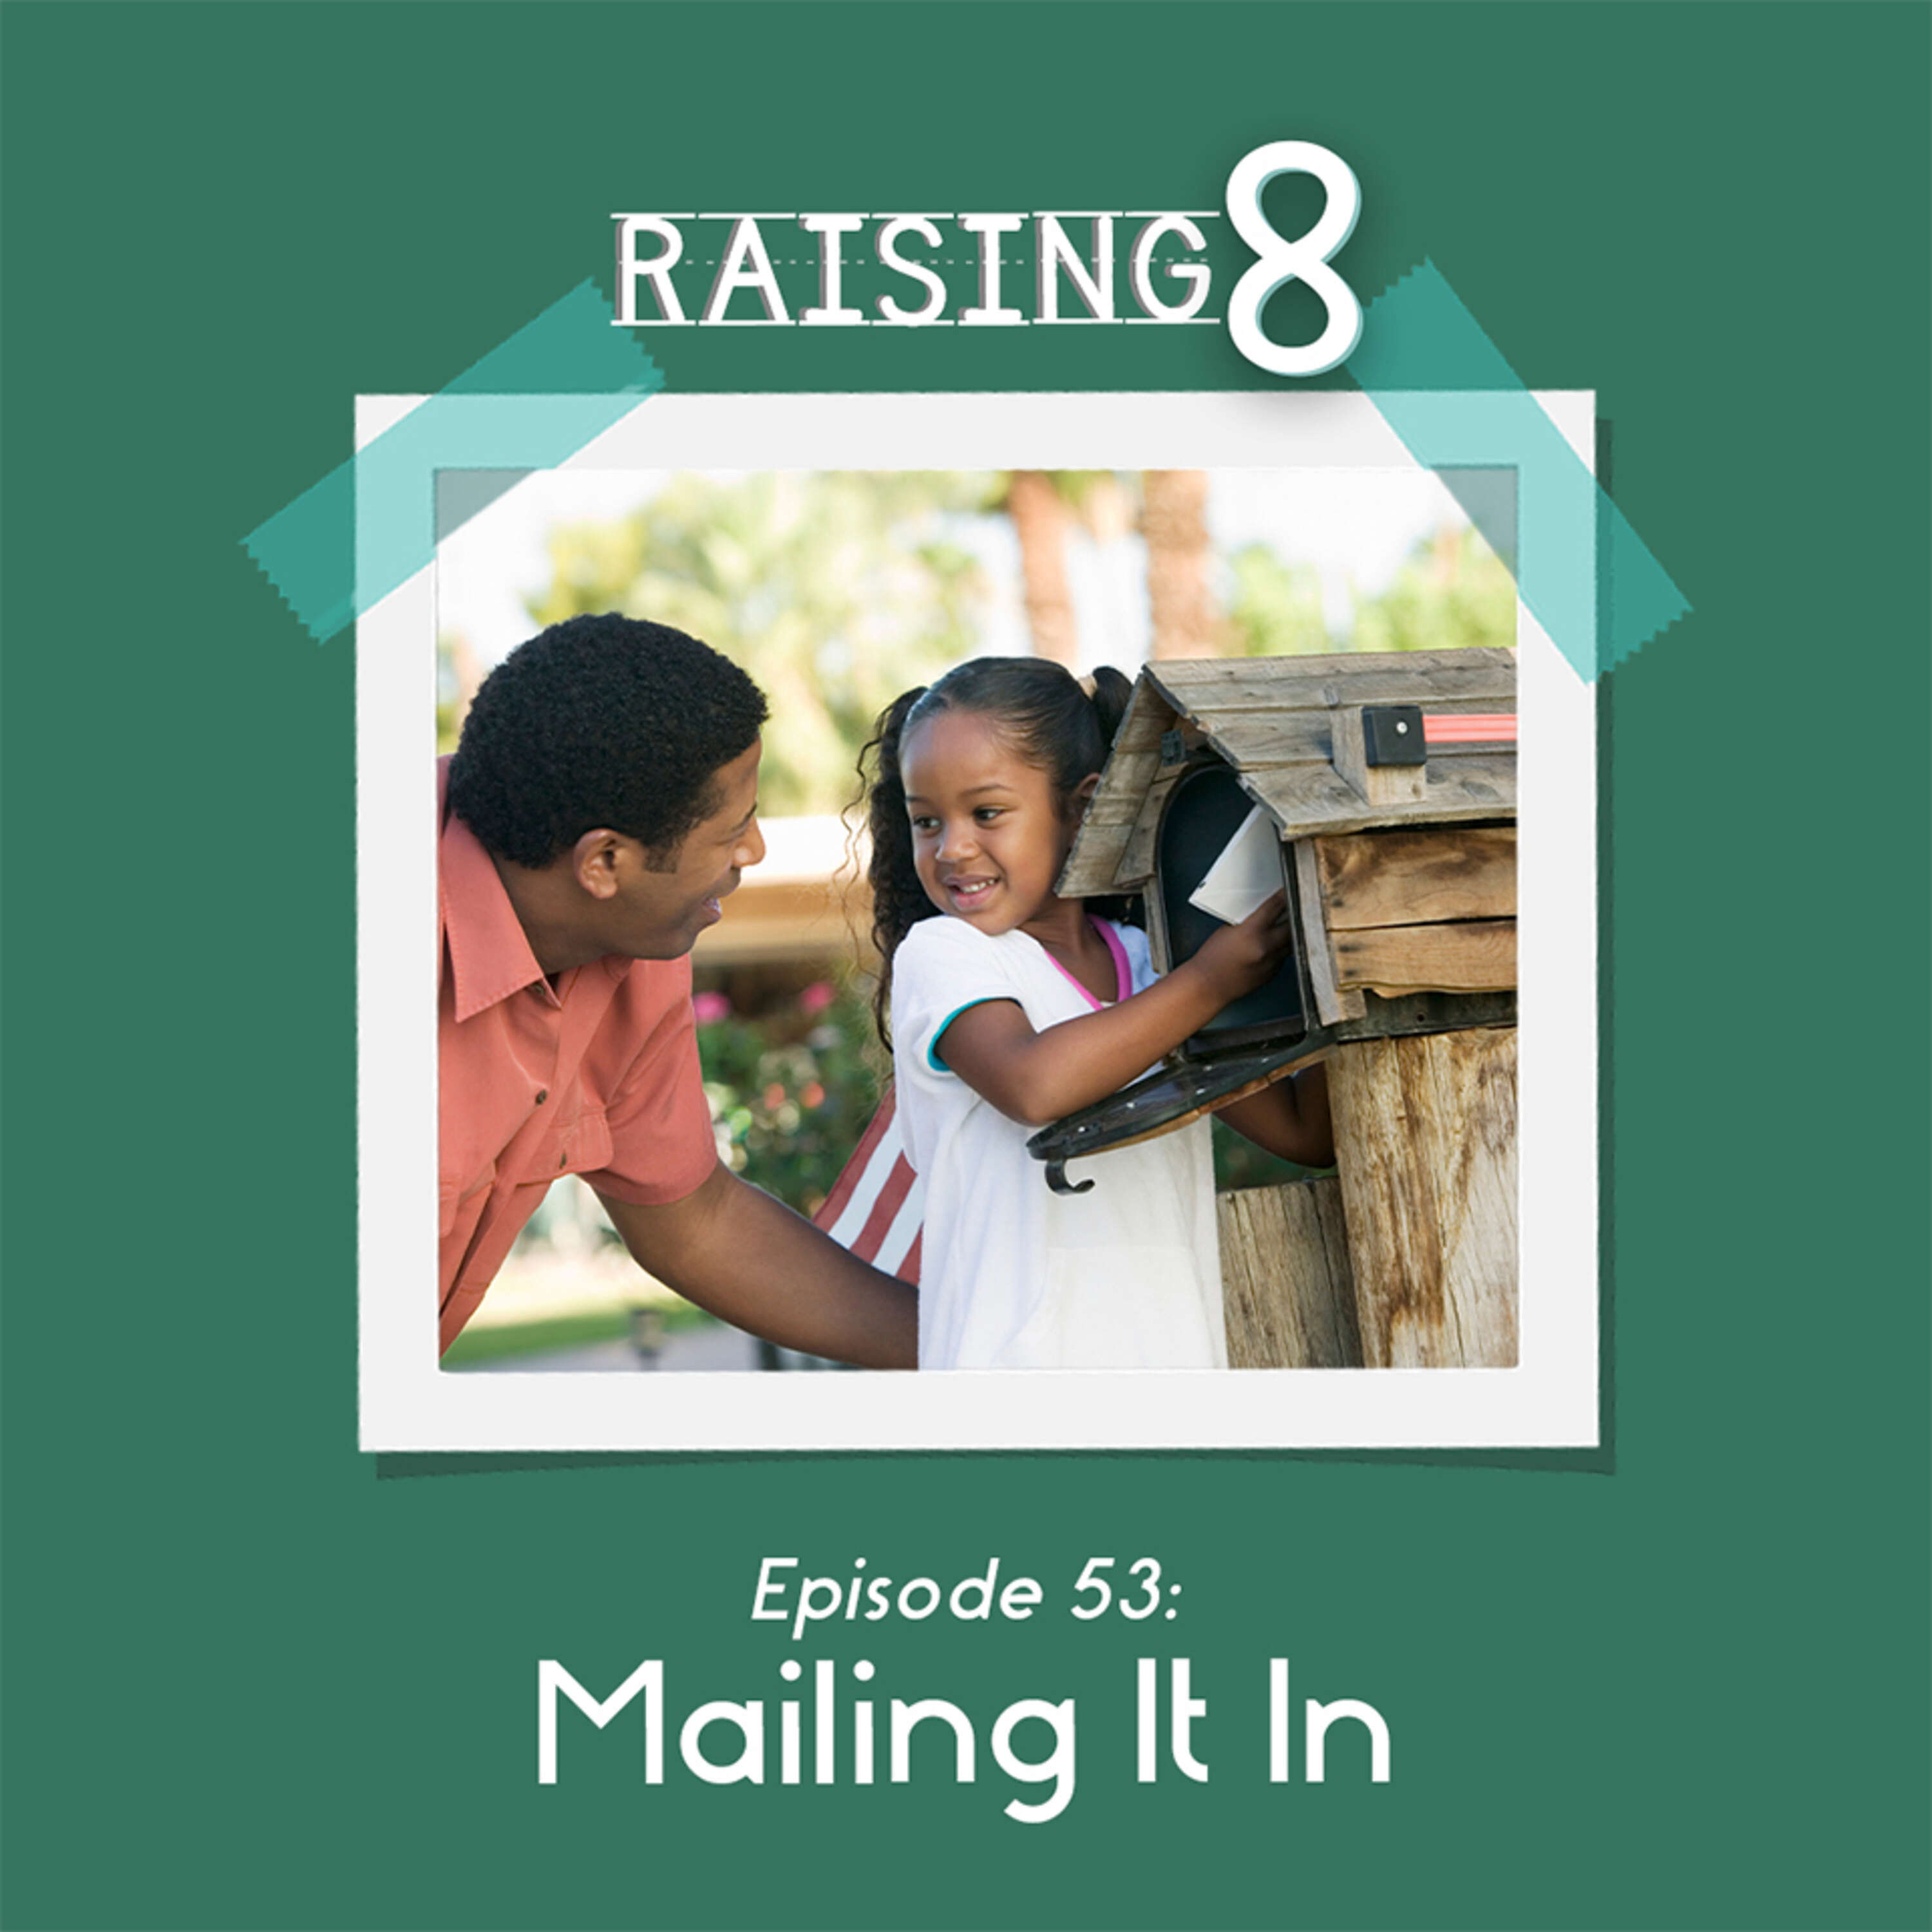 Episode 53: Mailing It In